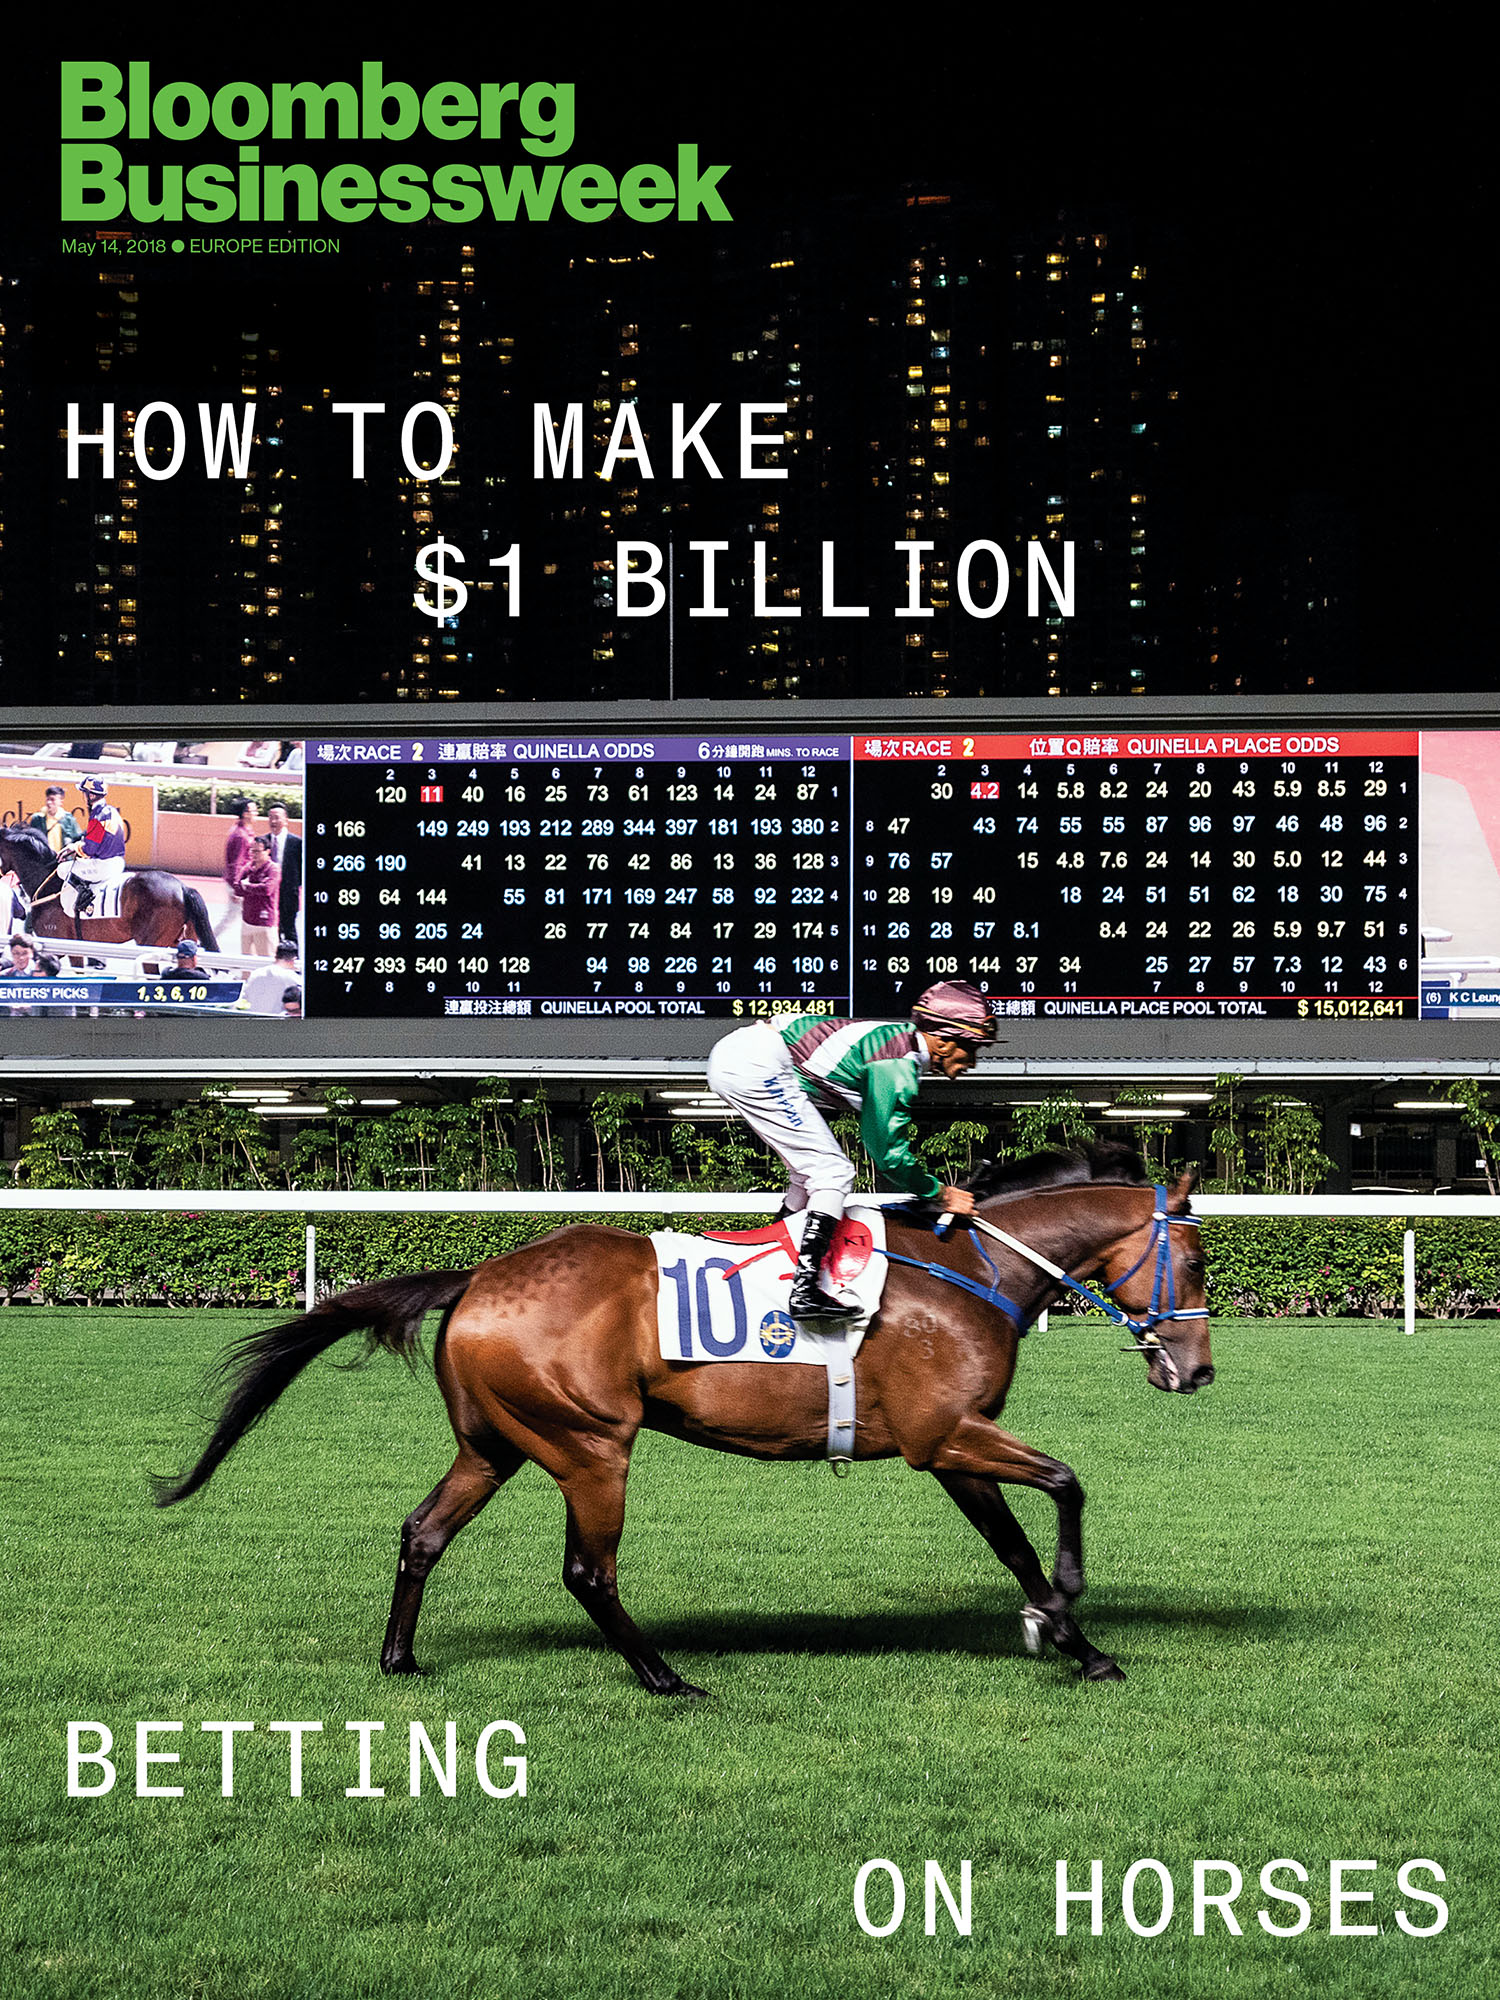 Horse racing betting vouchers for private soccer betting statistics and analysis